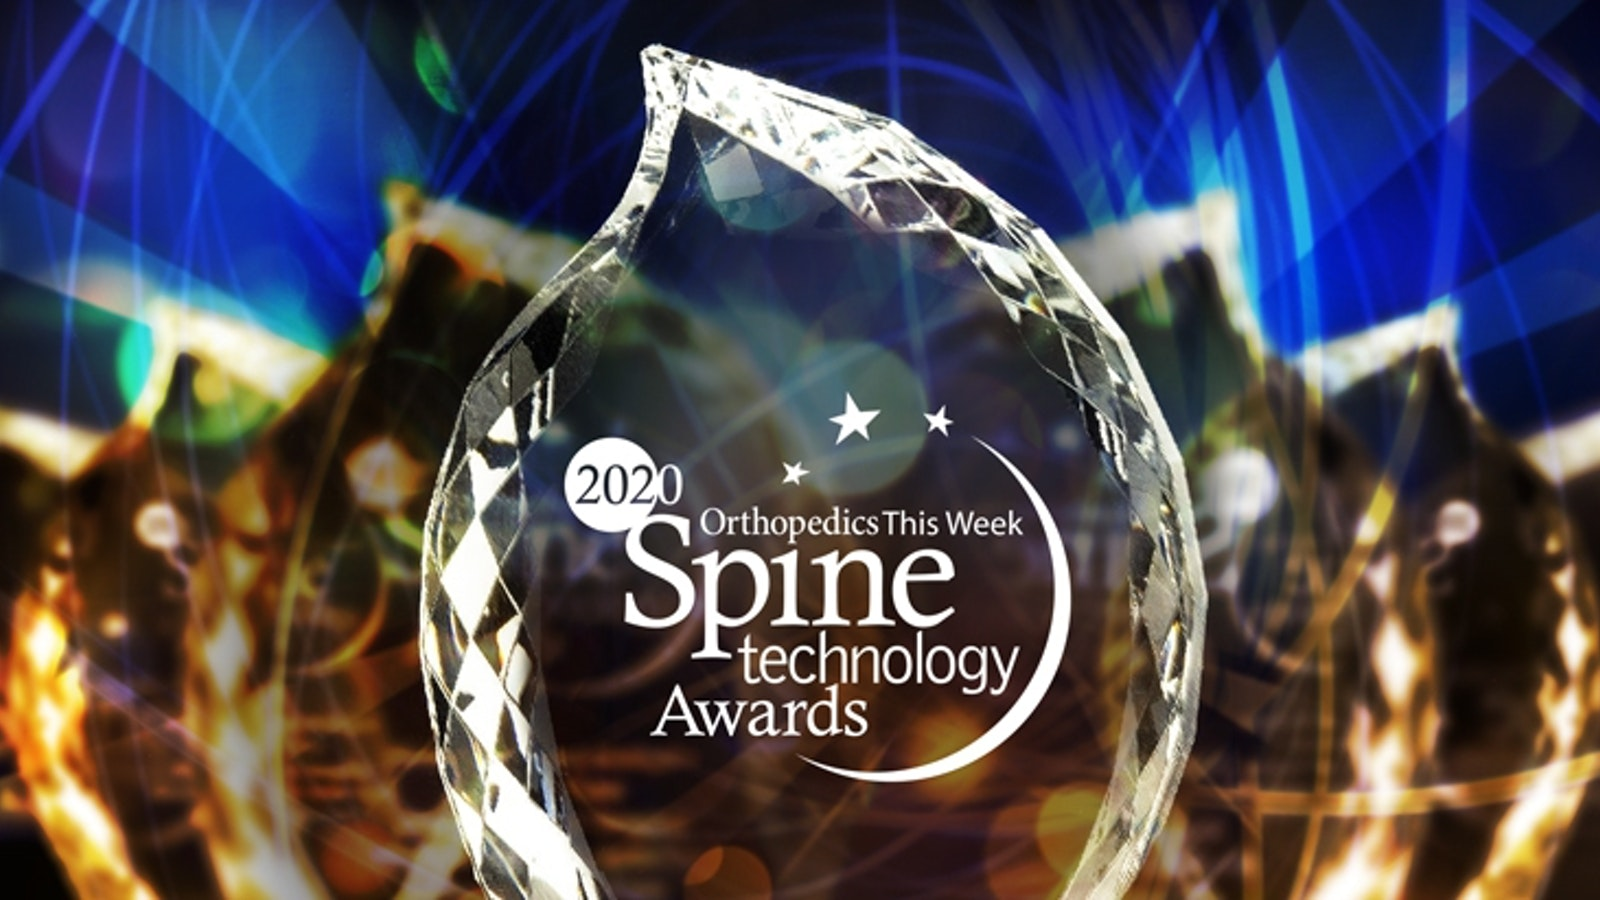 Spine Technology awards square